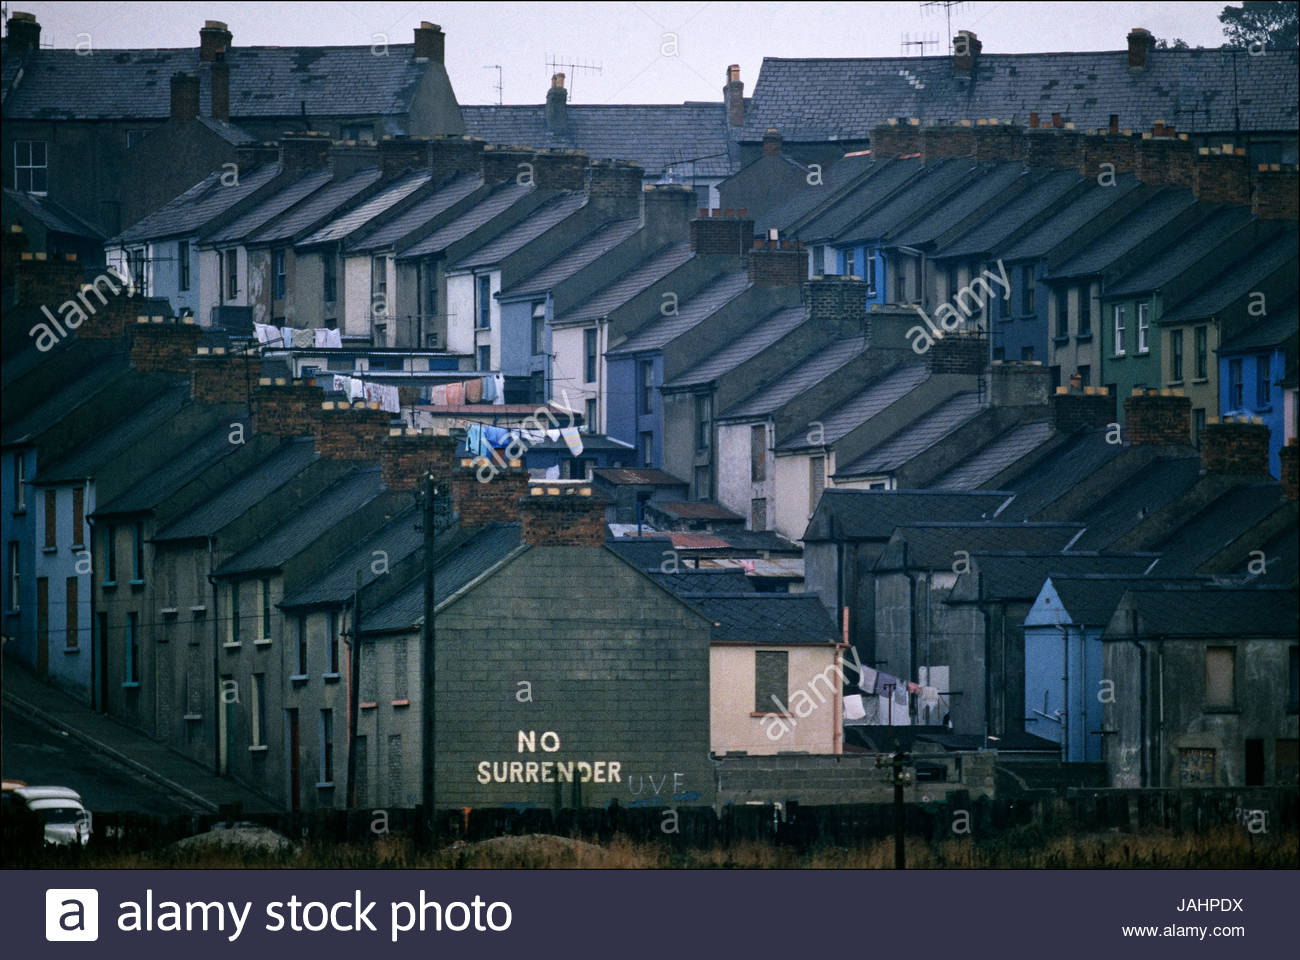 'No Surrender,' was the rallying cry of Northern Ireland Catholic residents in Londonderry after 13 unarmed - Stock Image